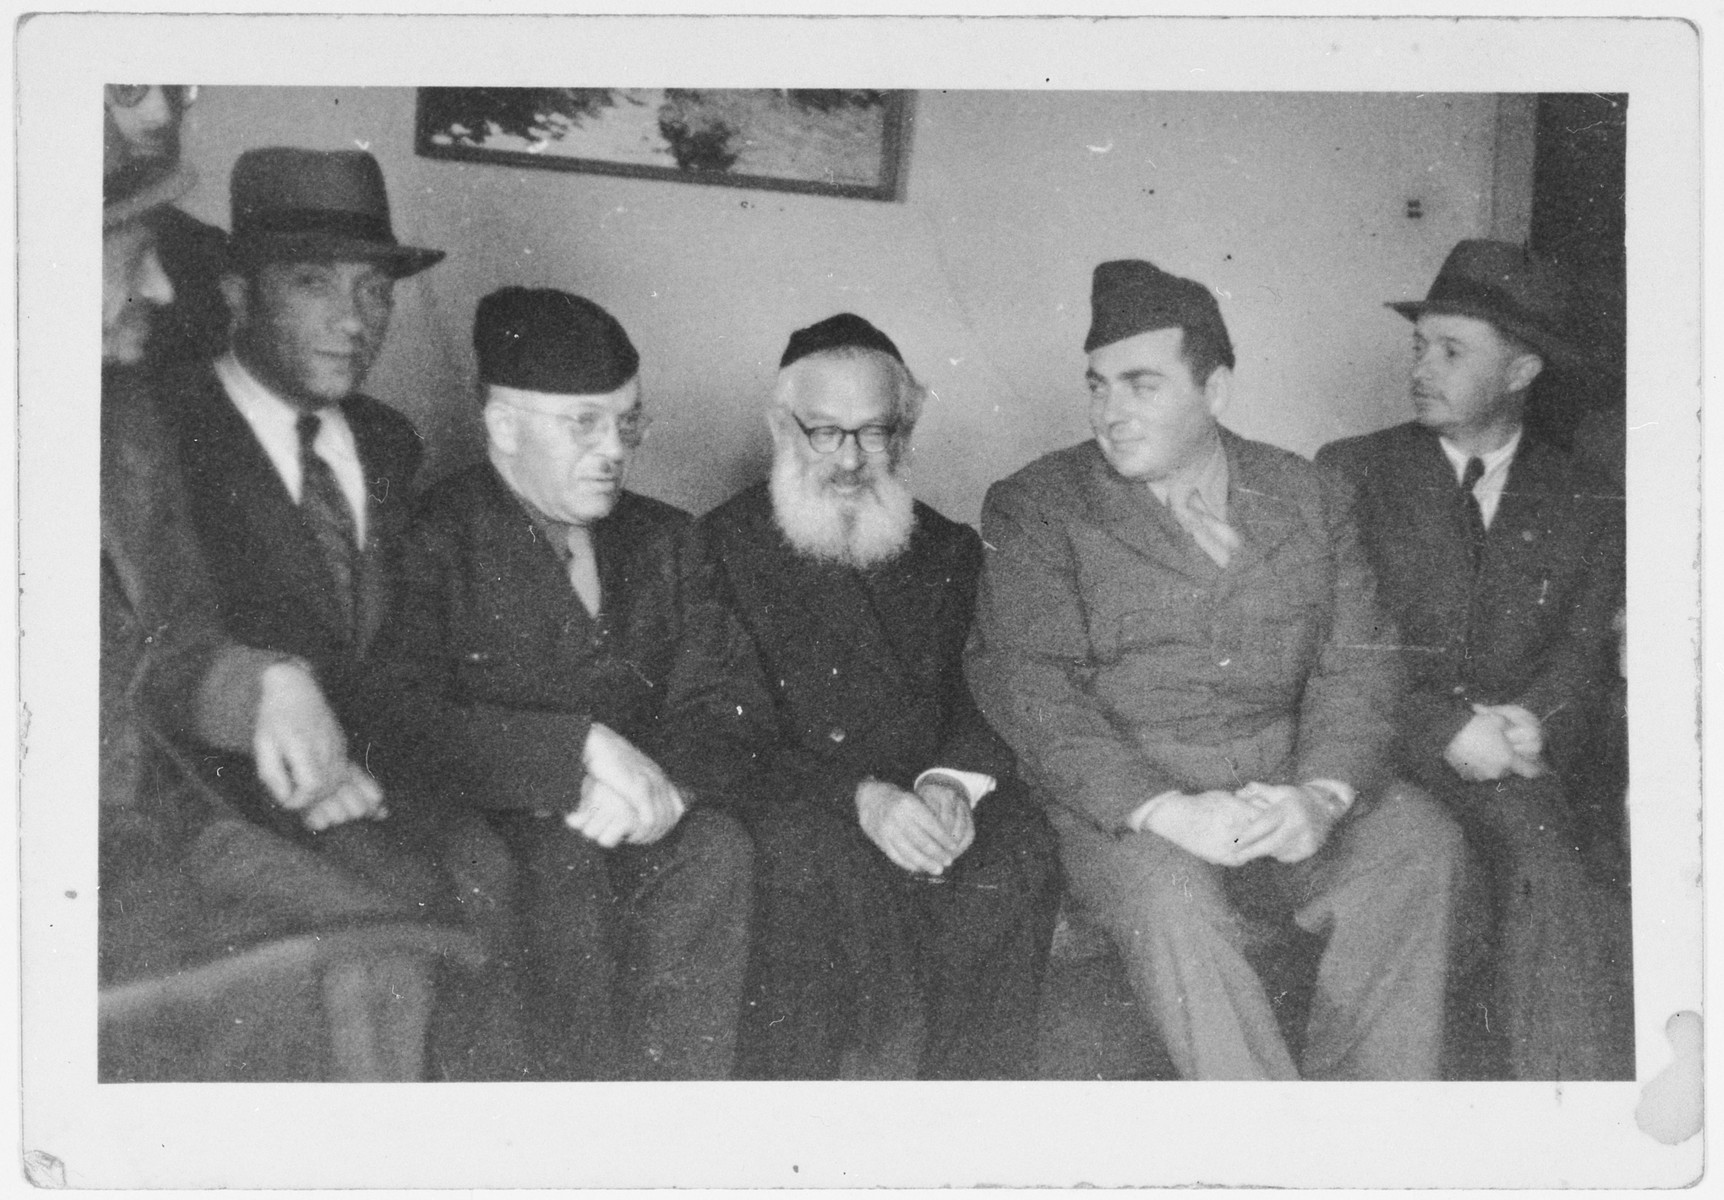 Rabbi Isaac Herzog, first Ashkenazi chief rabbi of the State of Israel, visits the Zeilsheim displaced persons' camp.